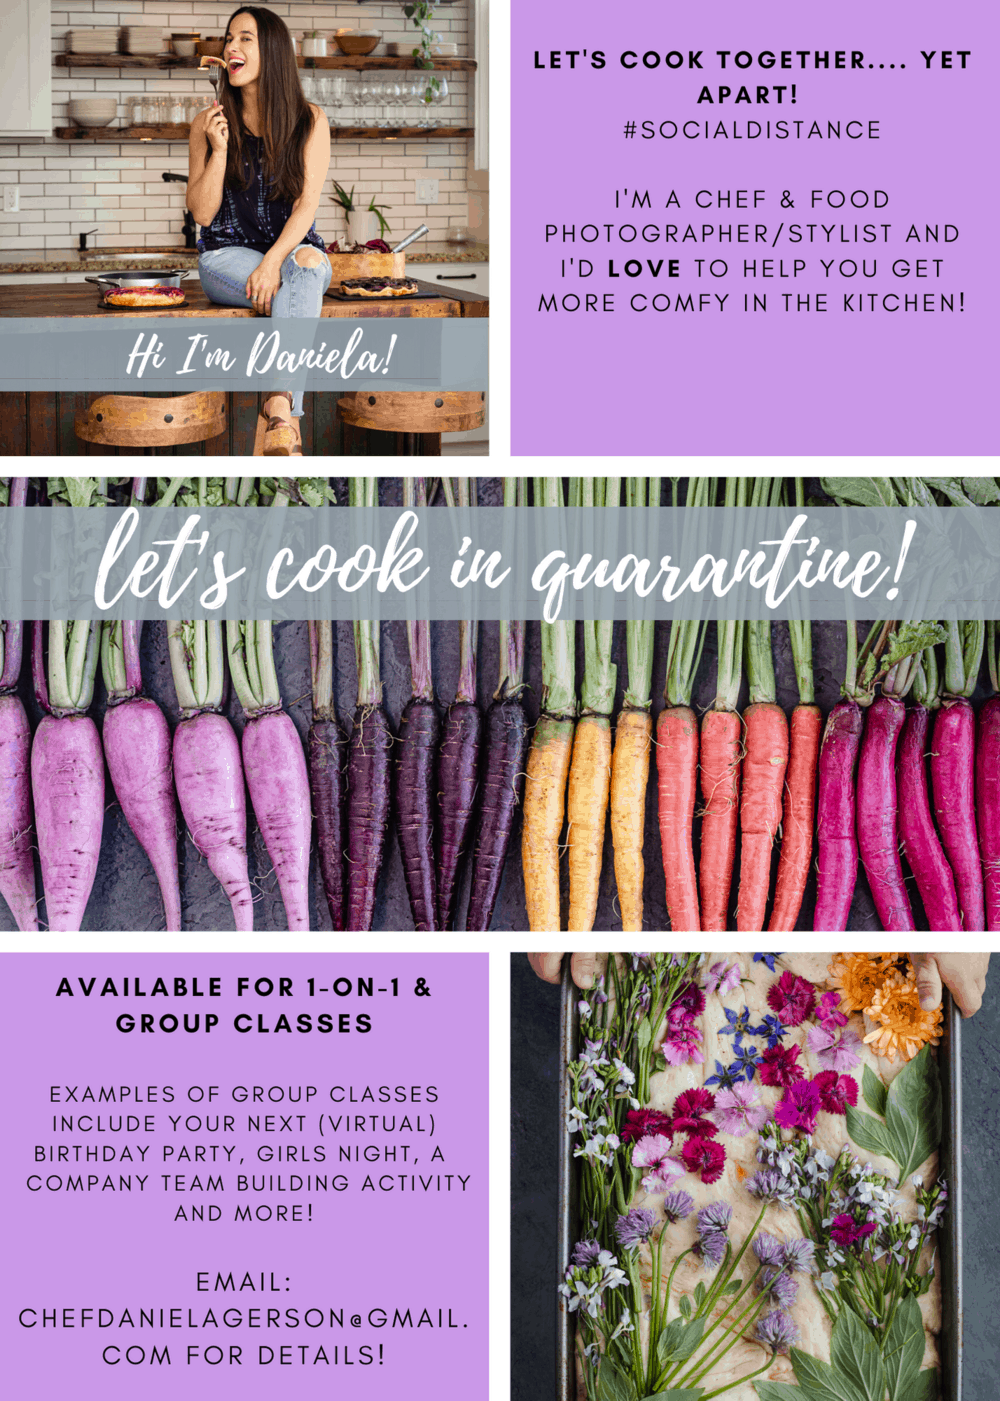 Flyer about Cooking Classes with Daniela Gerson